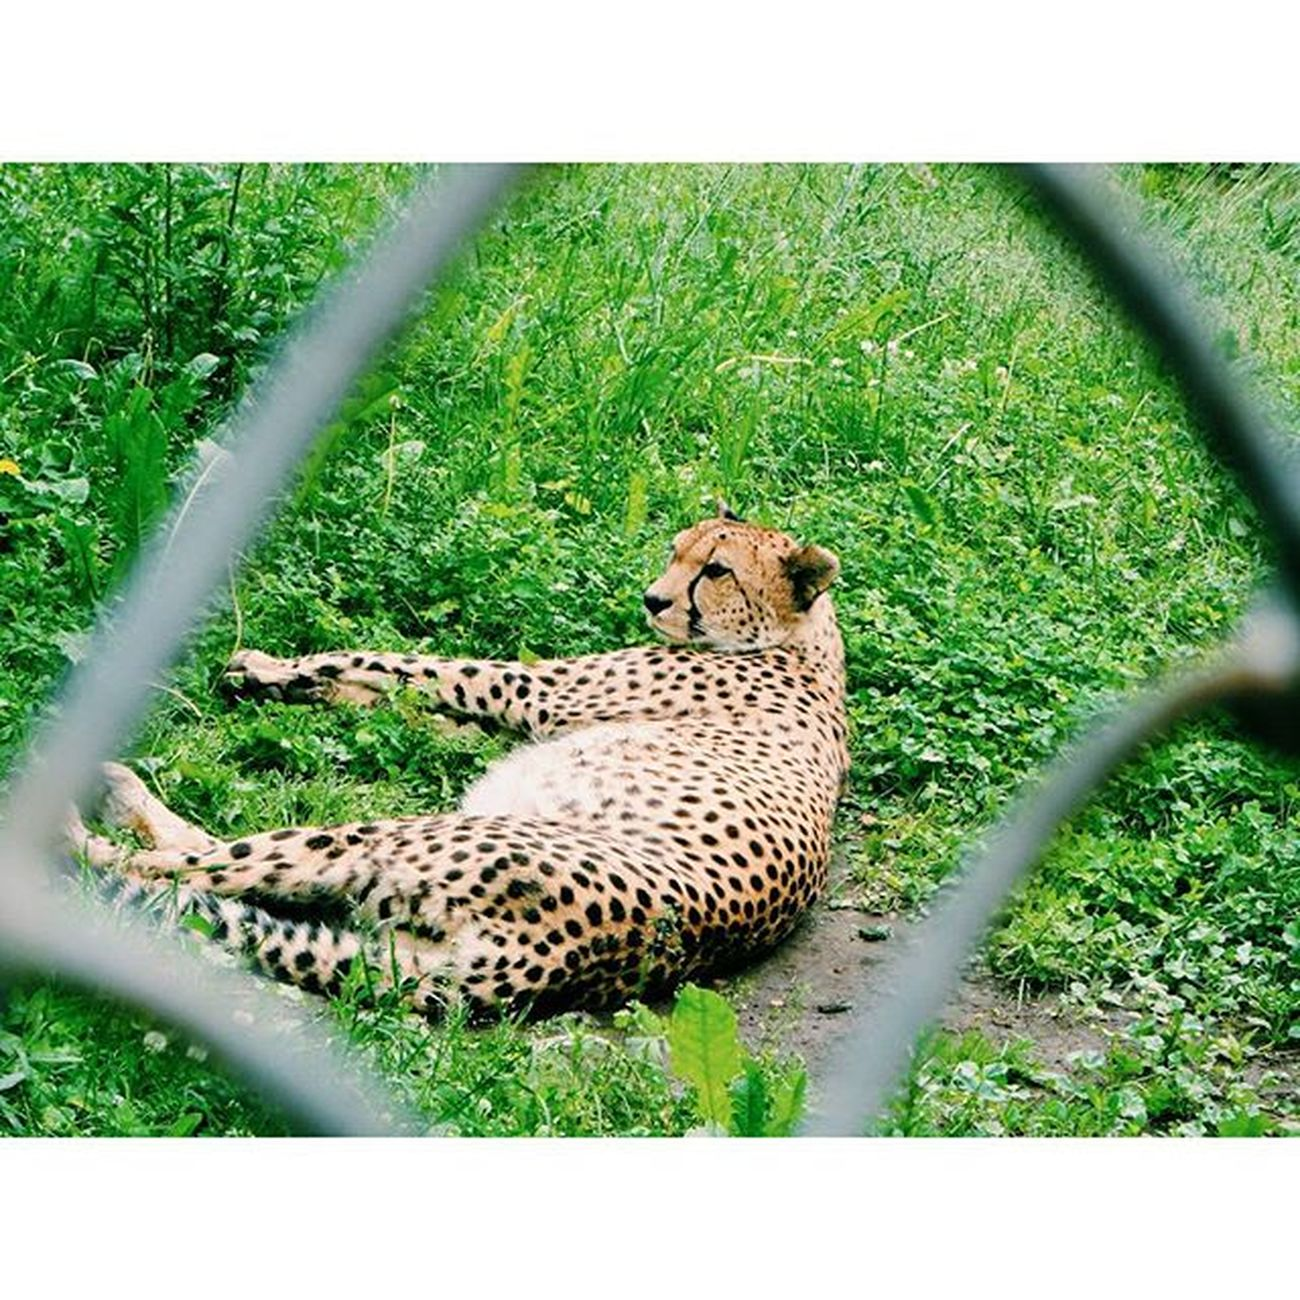 🐆 🐯 гепард кошка хищник зоопарк Охотник вклетке скорость лето жара Cheetah Cat Predator Zoo Hunter Inthecell Speed Summer Heat Instasize VSCO Vscocam Fv5 Fv5camera Nexus4photography Nexus4